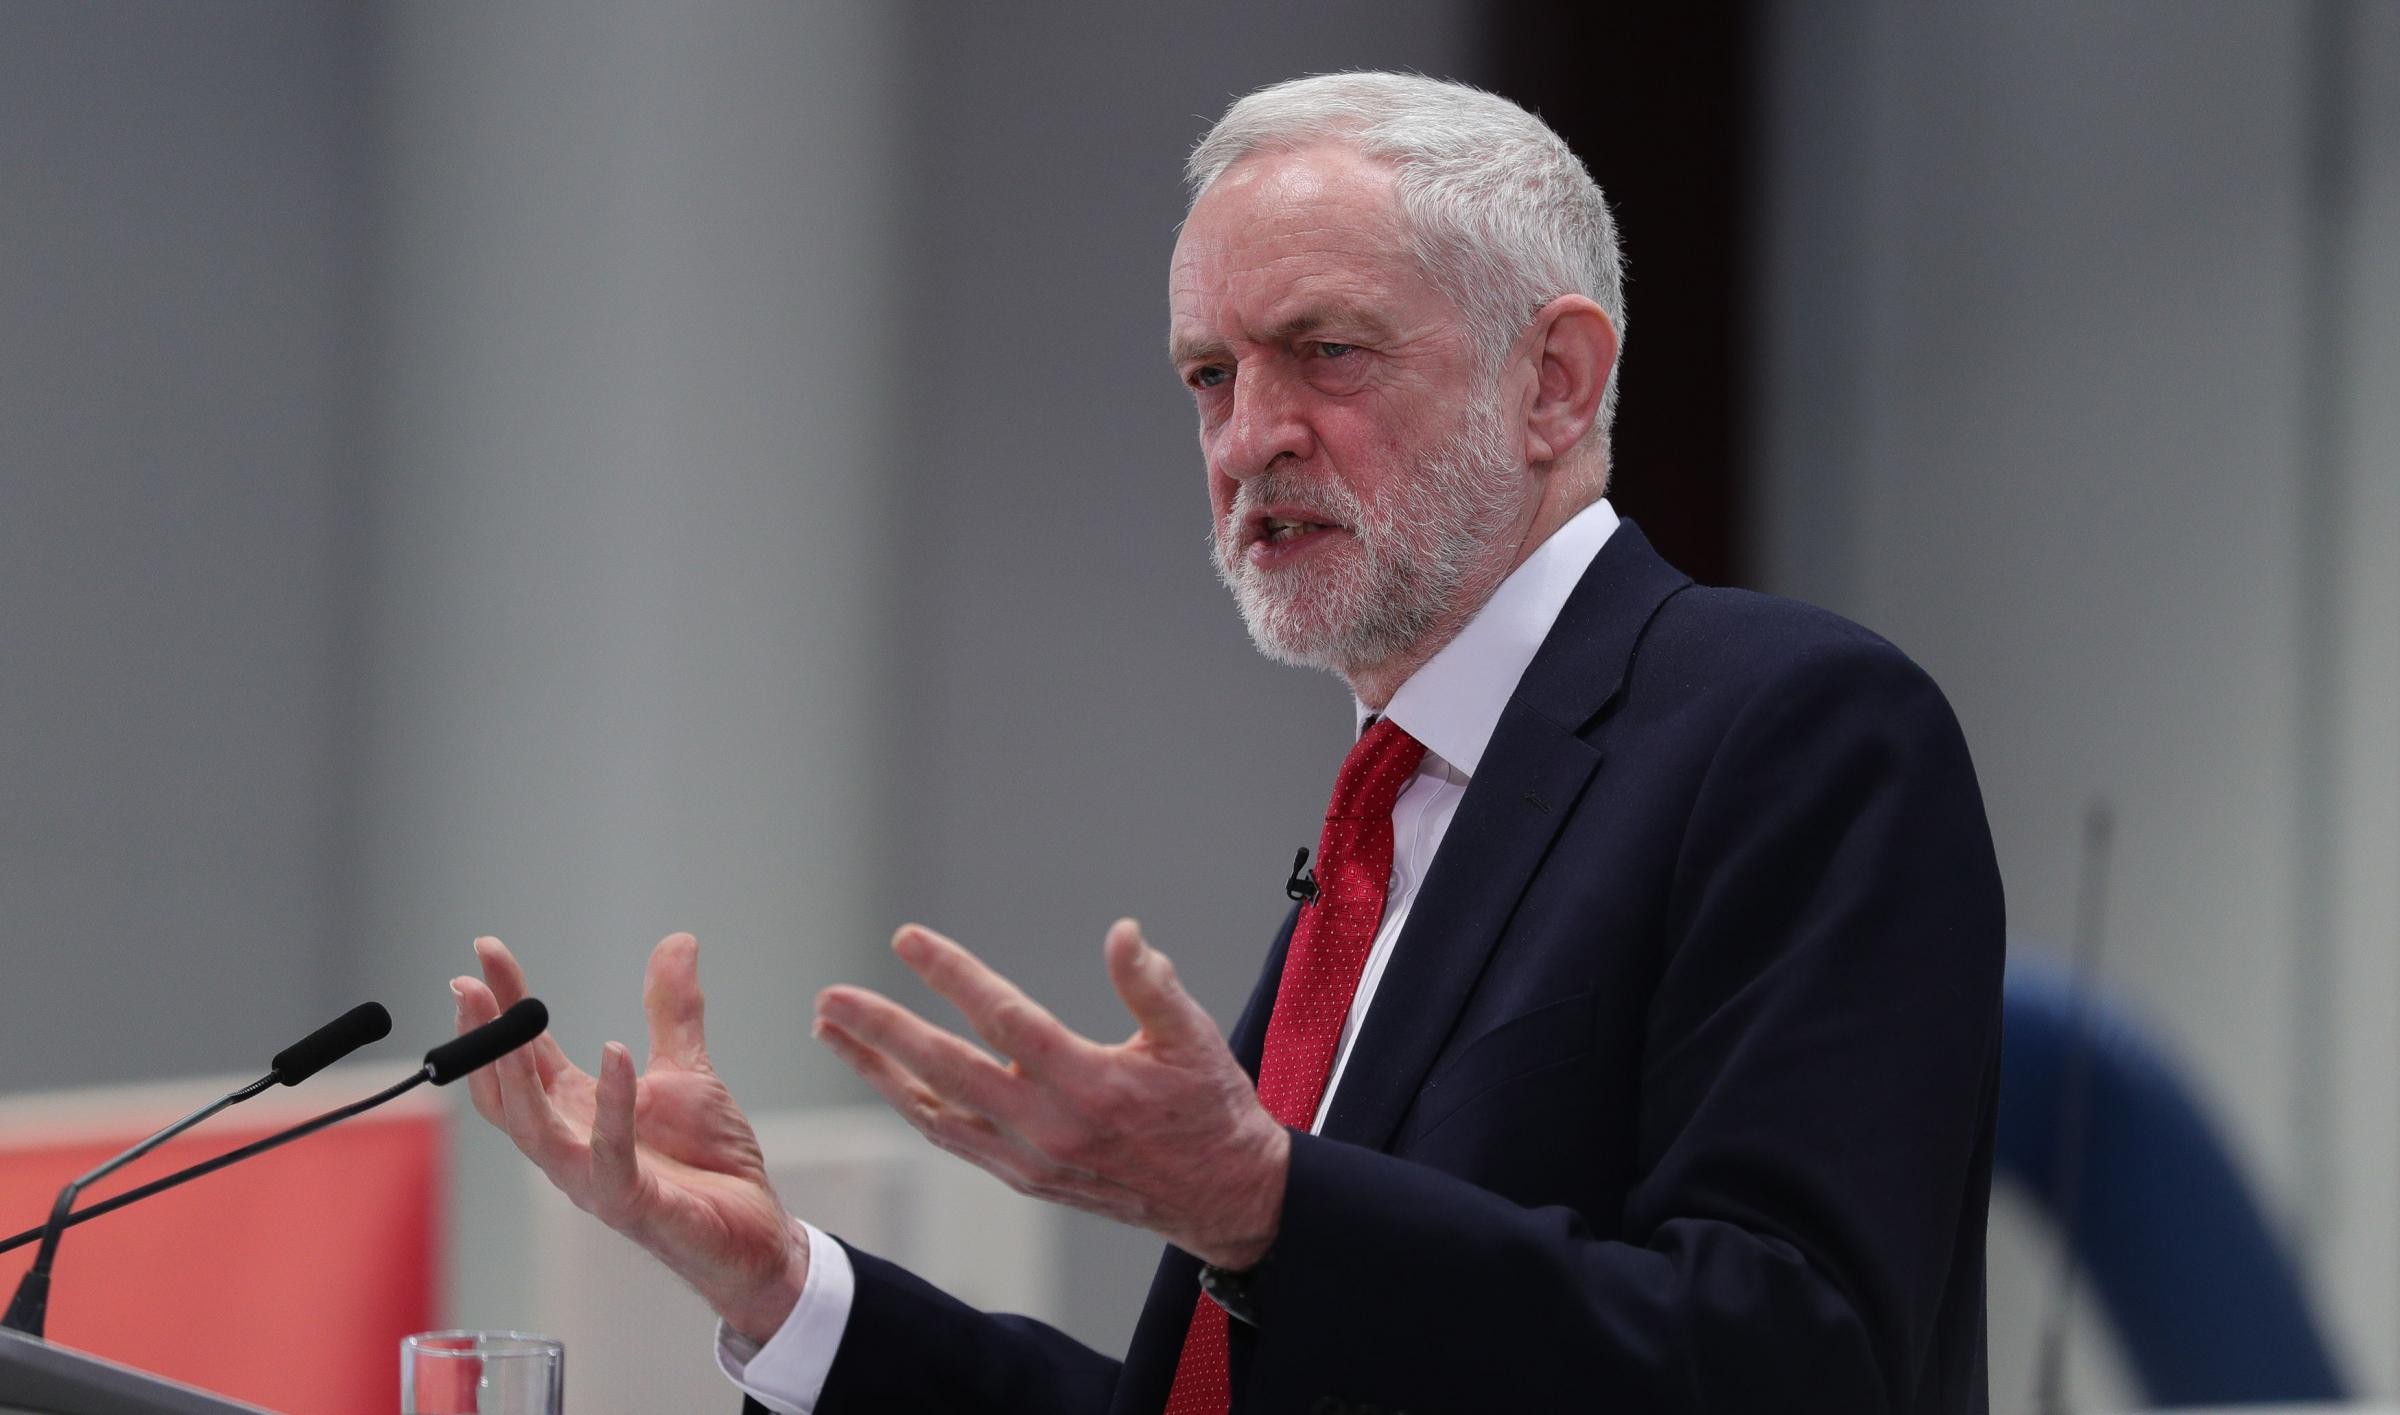 There was a 'clear majority' in favour of backing Jeremy Corbyn's position